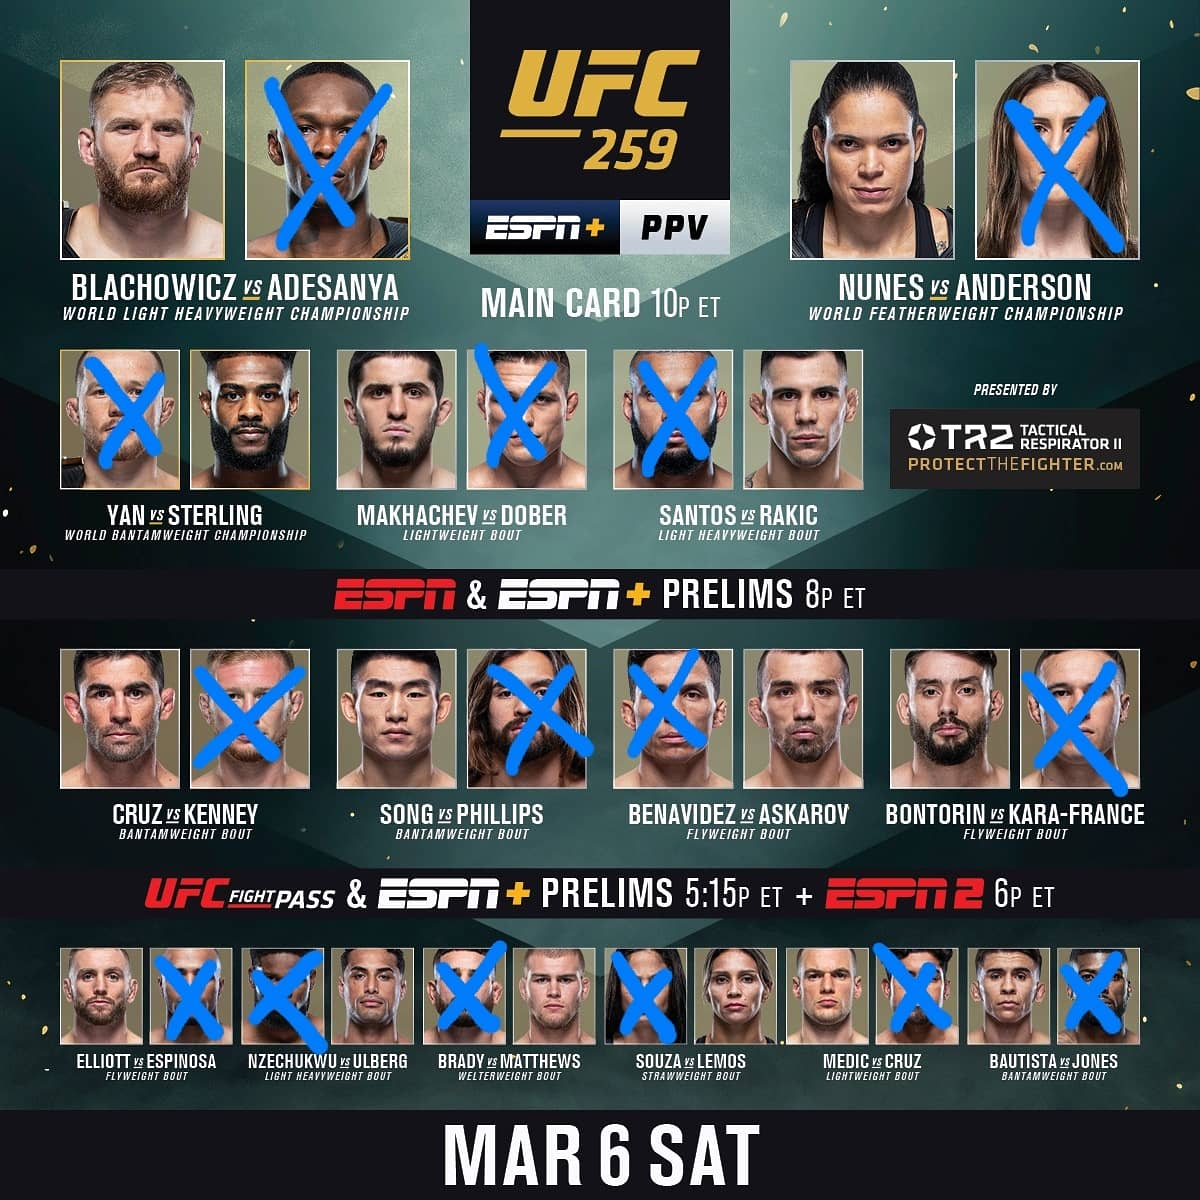 Here's our picks for tonight🔥 Scott's in blue, Marc's in red 👊🏼 who you got?🤷🏻♂️        #mmatwitter #mma #UFC #UFCVegas21 #ufcvegas #UFC259 #PodernFamily #podcast #podcasting #ufcfightisland #ufcfightnight